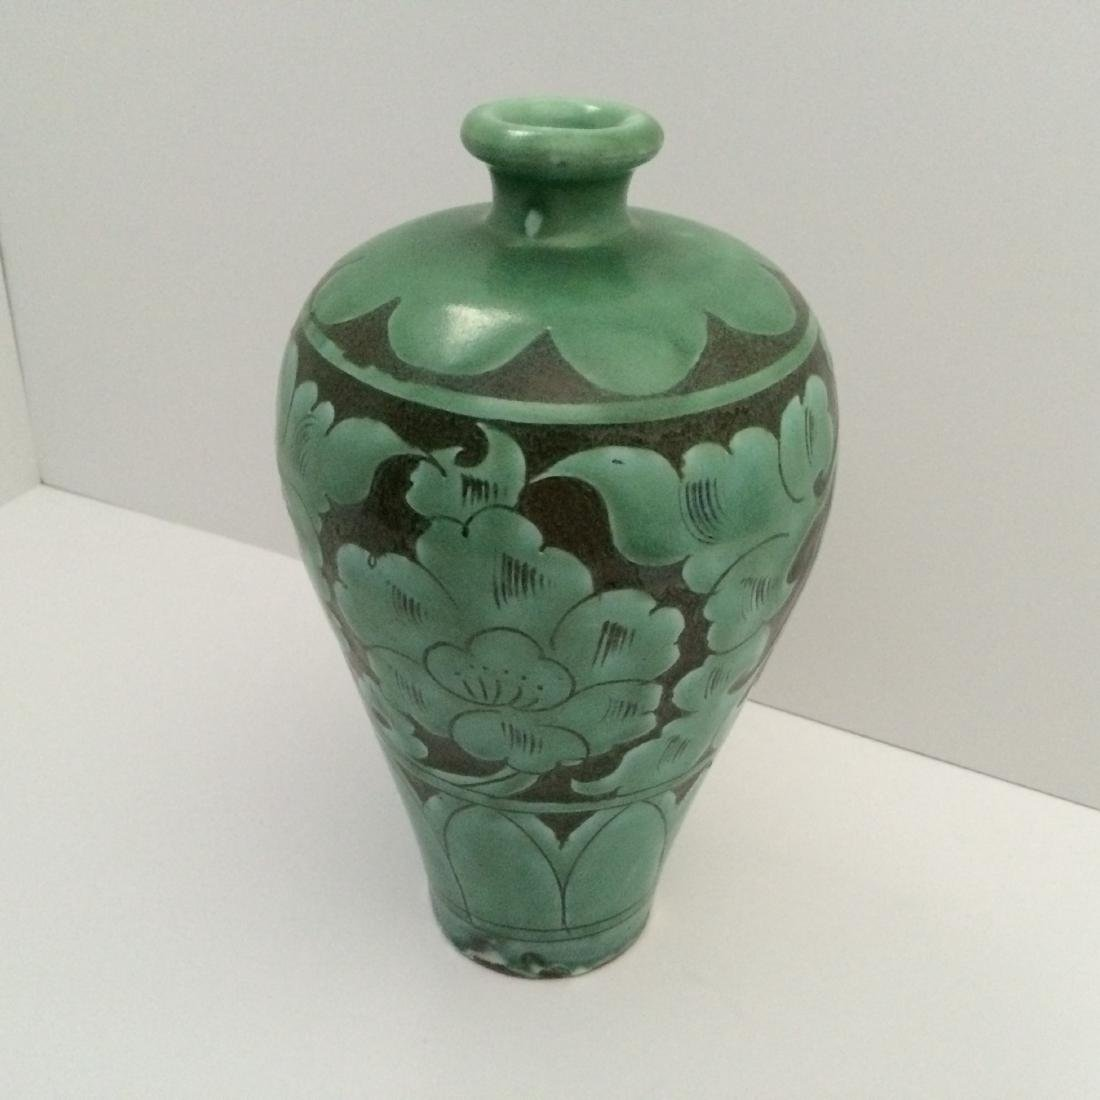 Song Dynasty Ci Zhou Ware Vase, Meiping